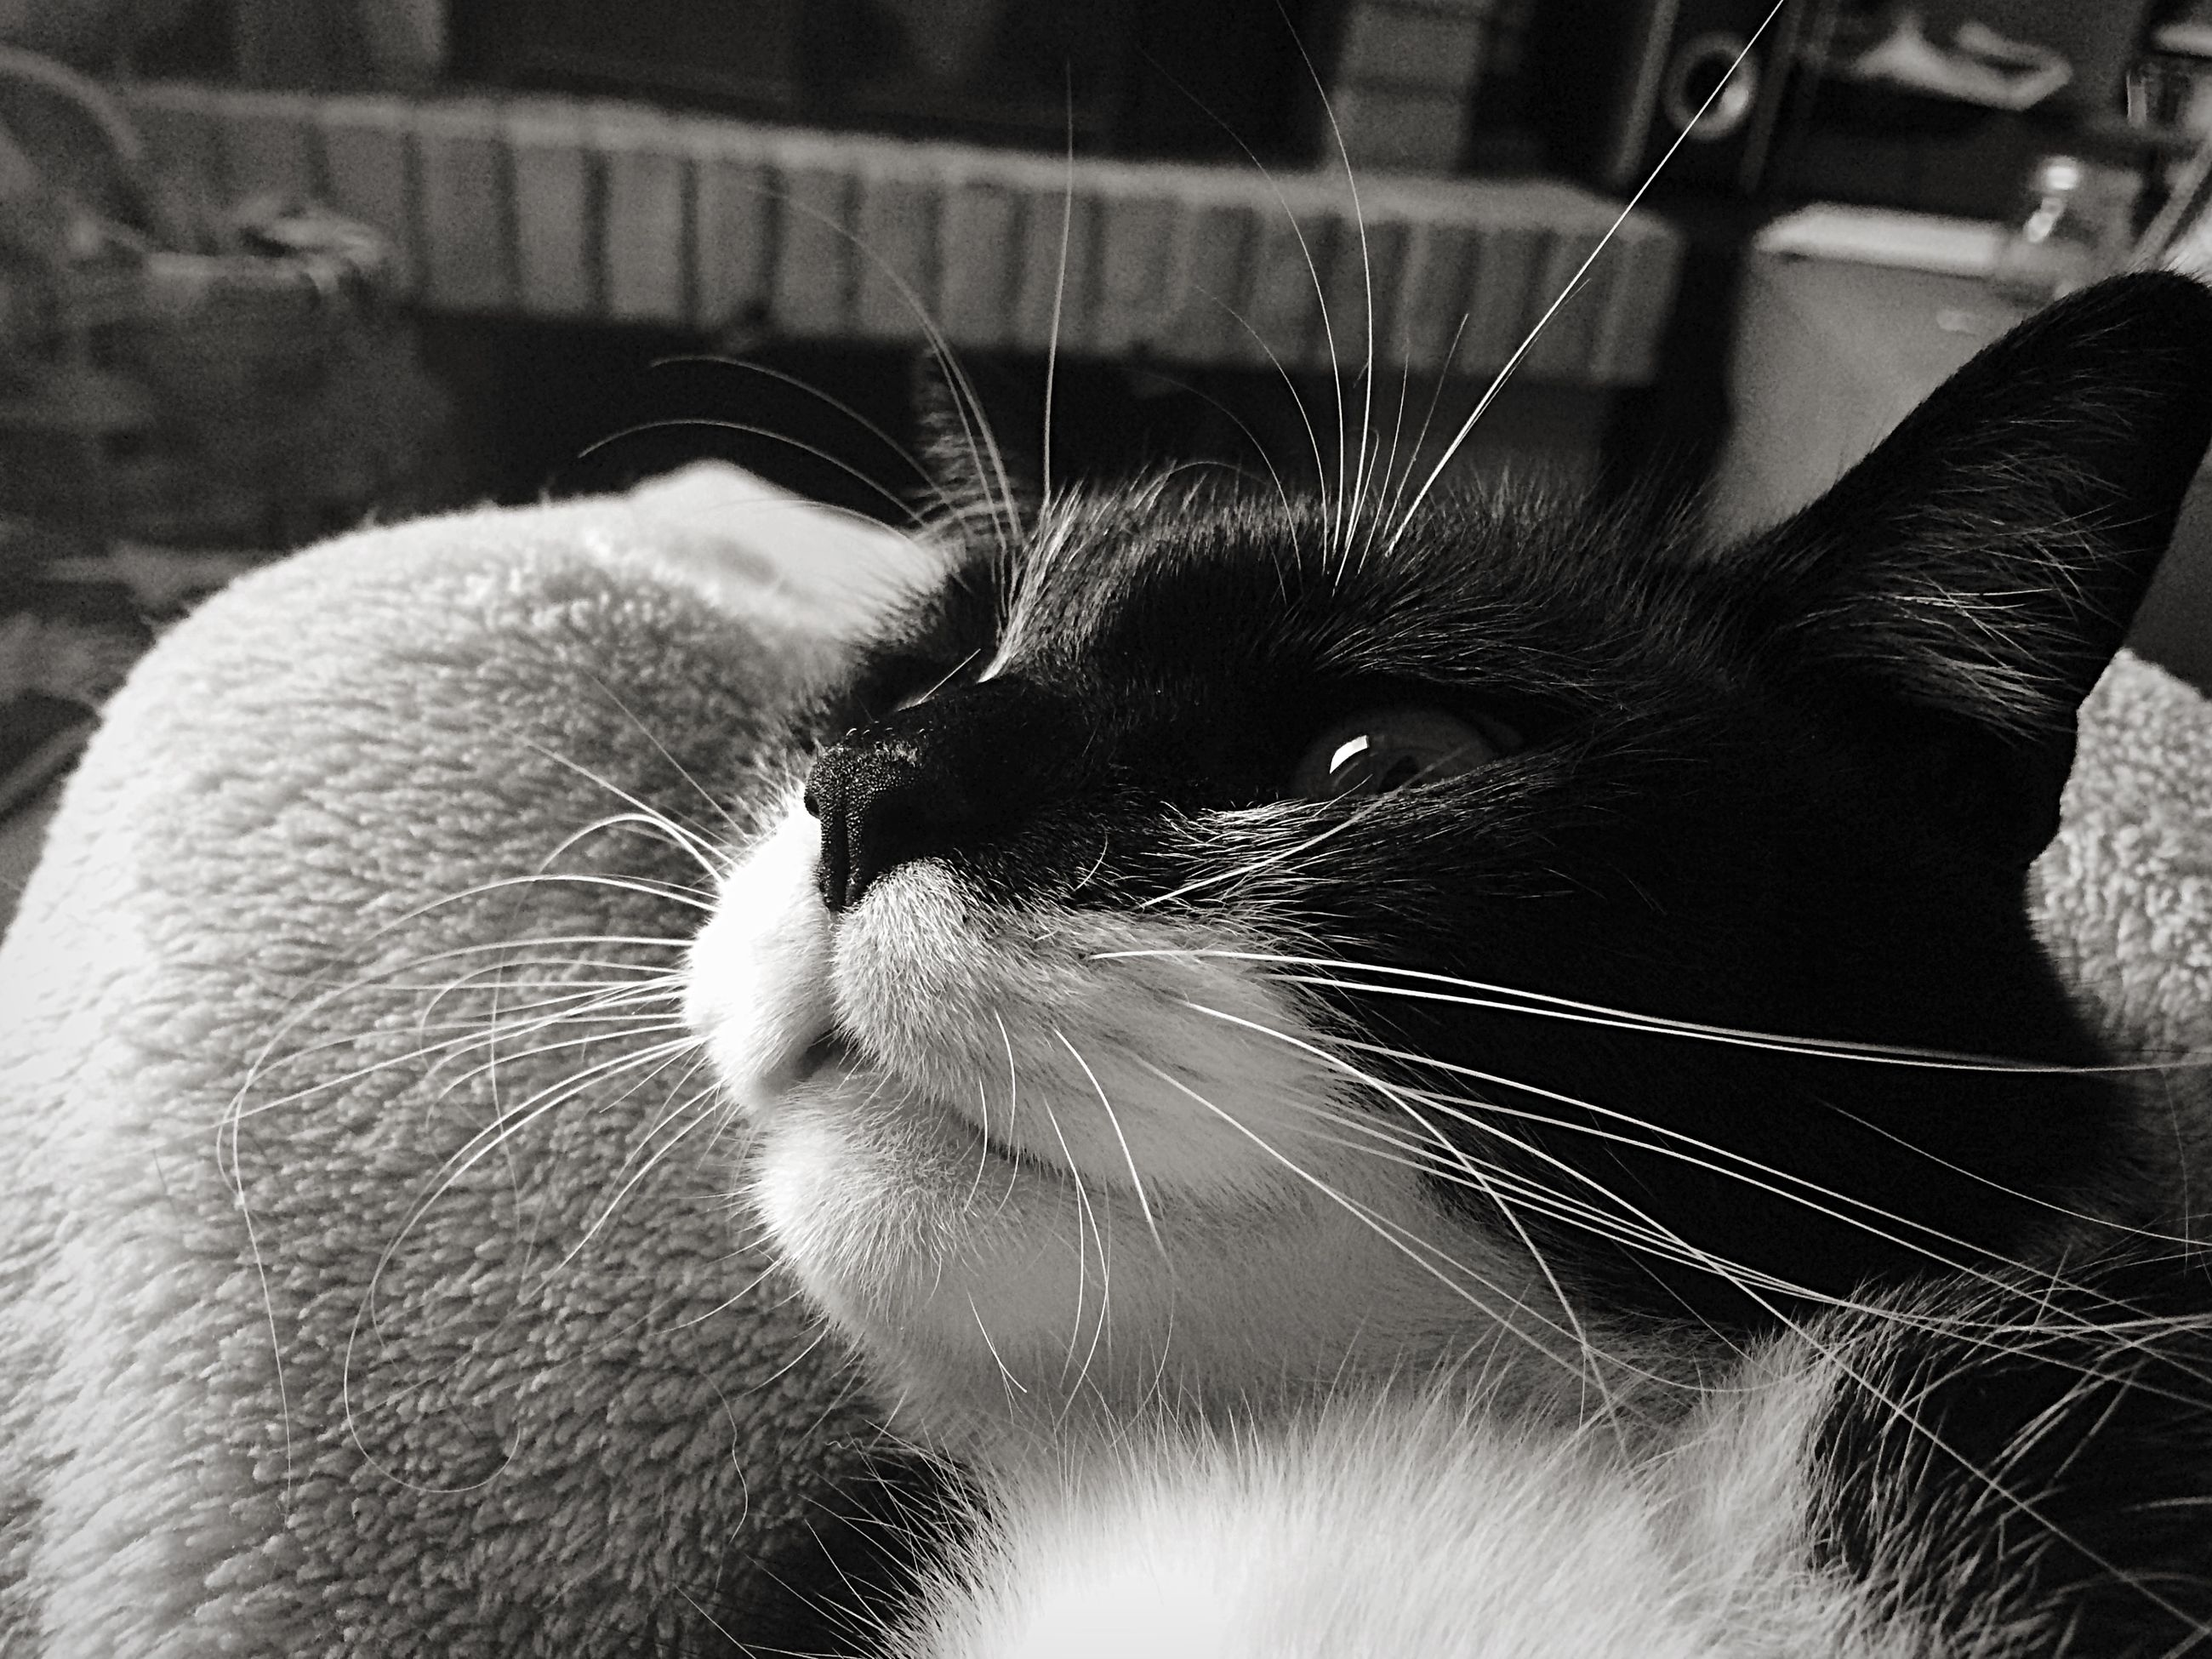 domestic animals, one animal, pets, animal themes, domestic cat, mammal, indoors, cat, close-up, whisker, feline, animal head, animal body part, part of, relaxation, focus on foreground, animal hair, no people, cropped, animal eye